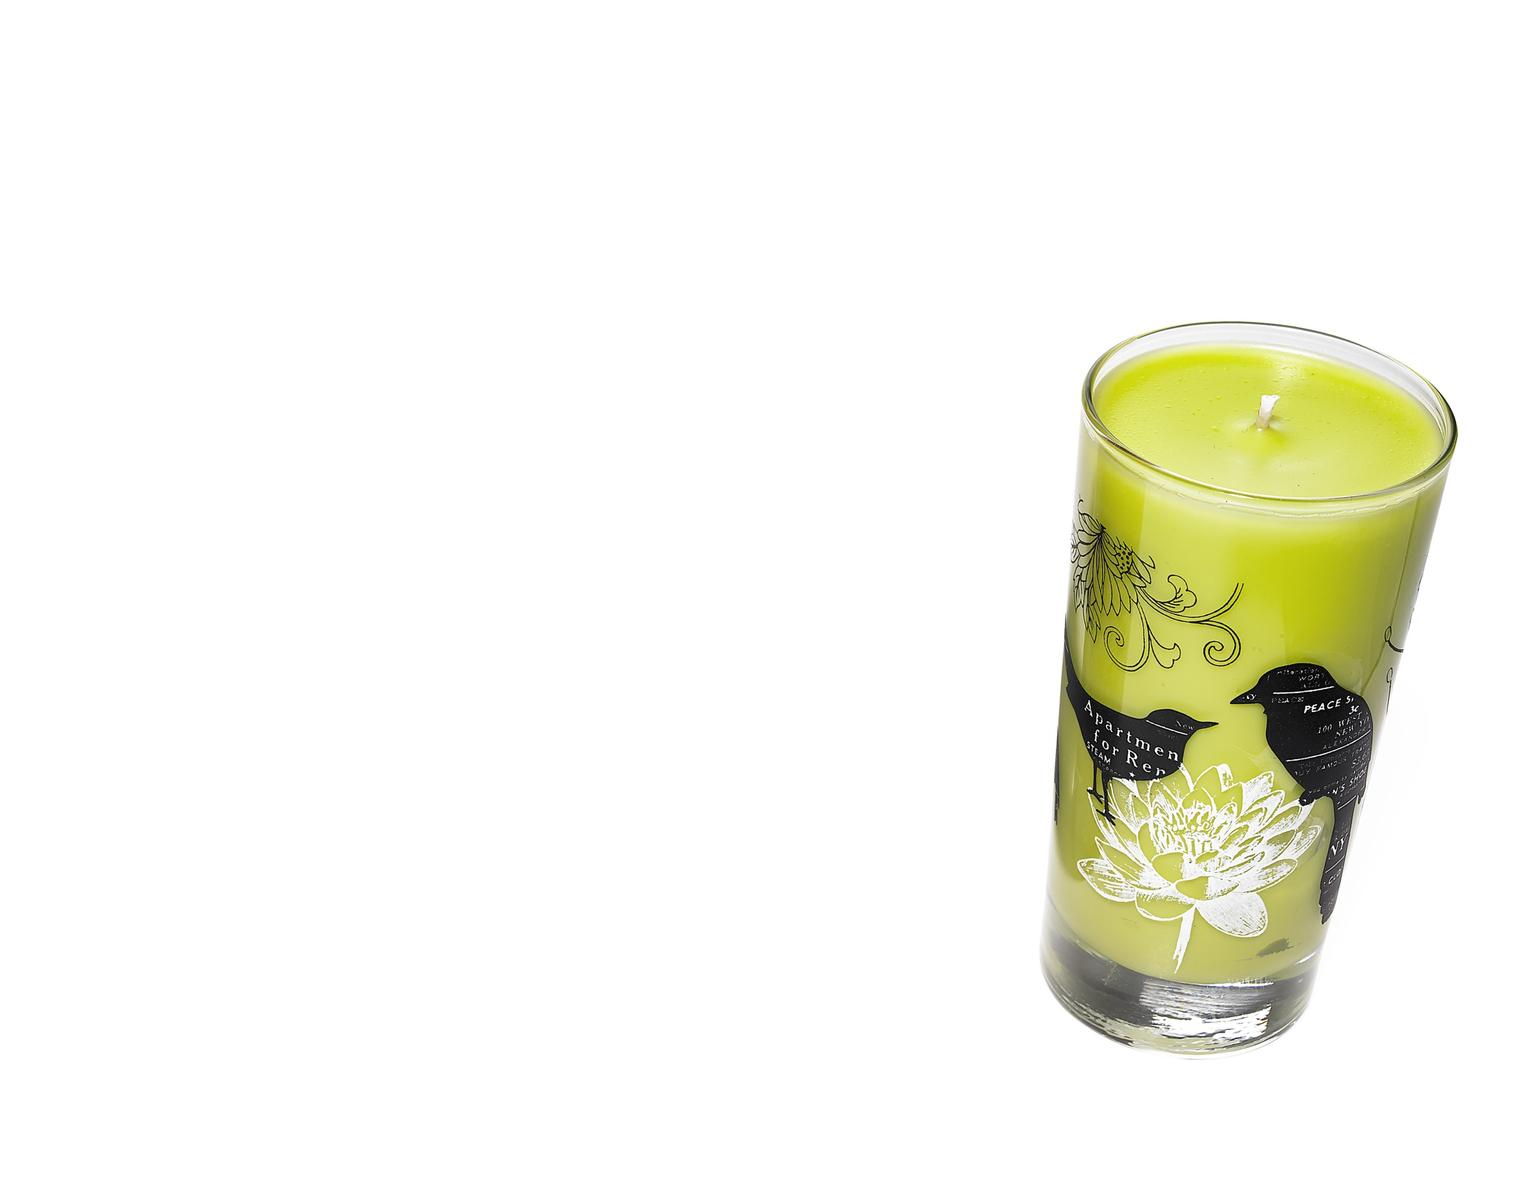 Candle in Glass Container with Bird Design